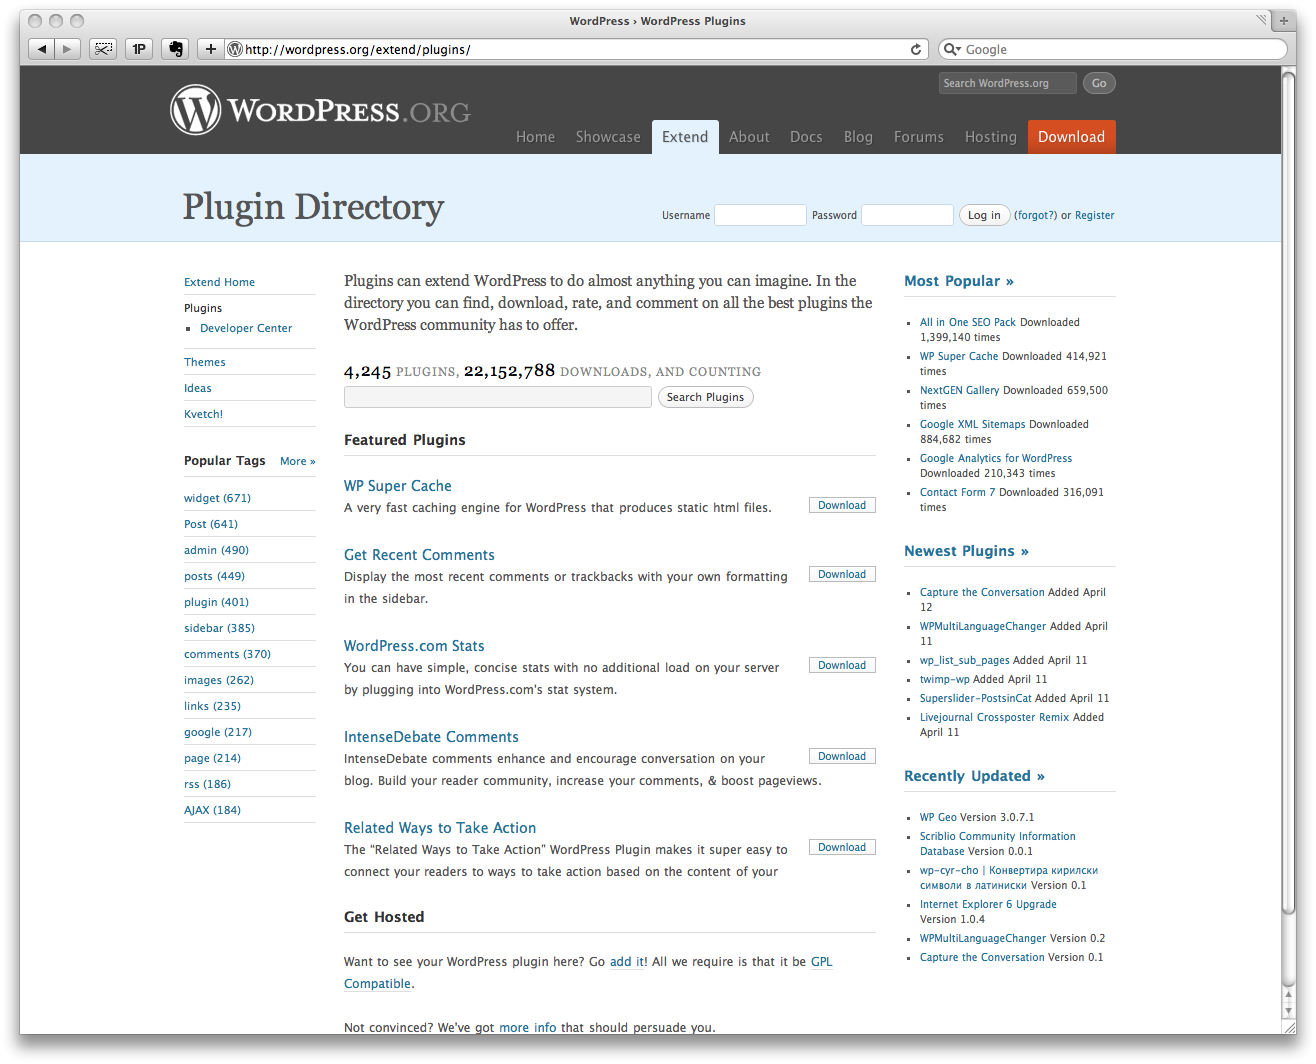 wordpress-plugins-page